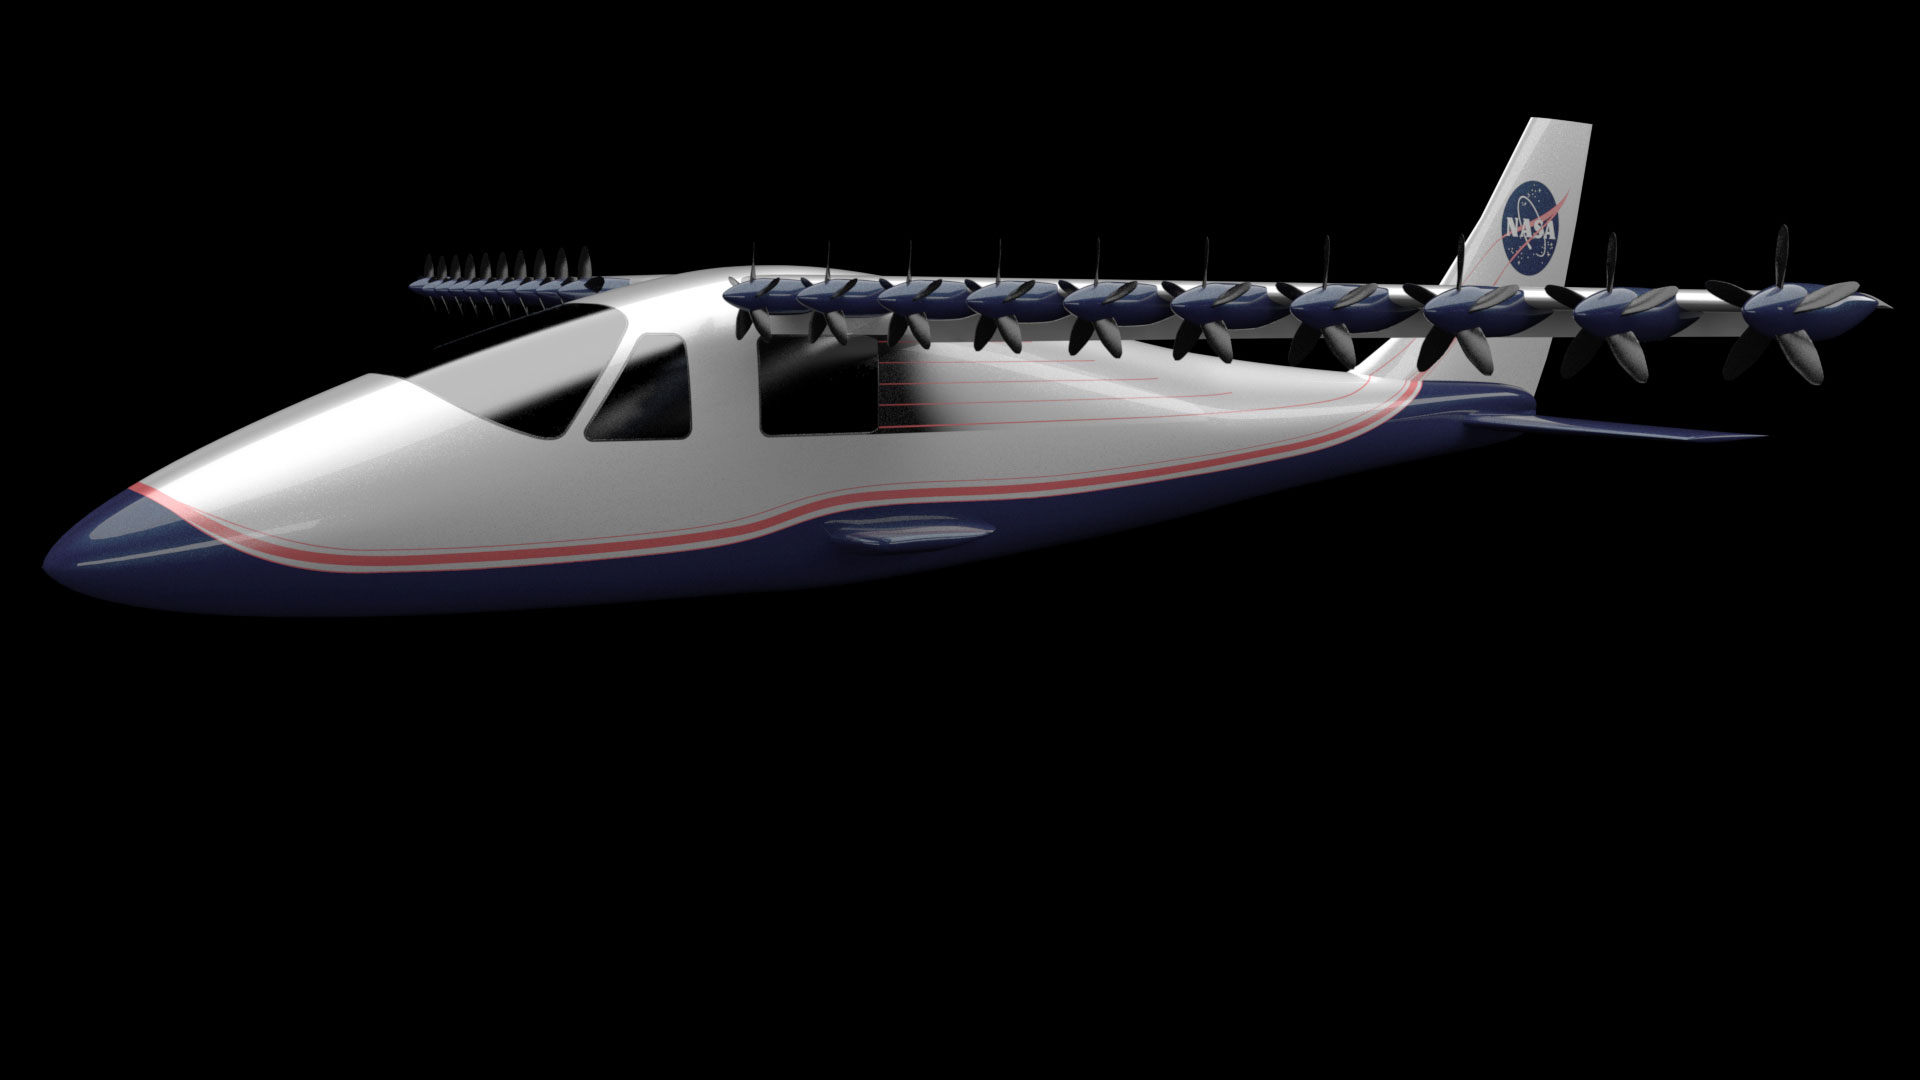 Distributed Electric Propulsion May Usher In A New Era Of